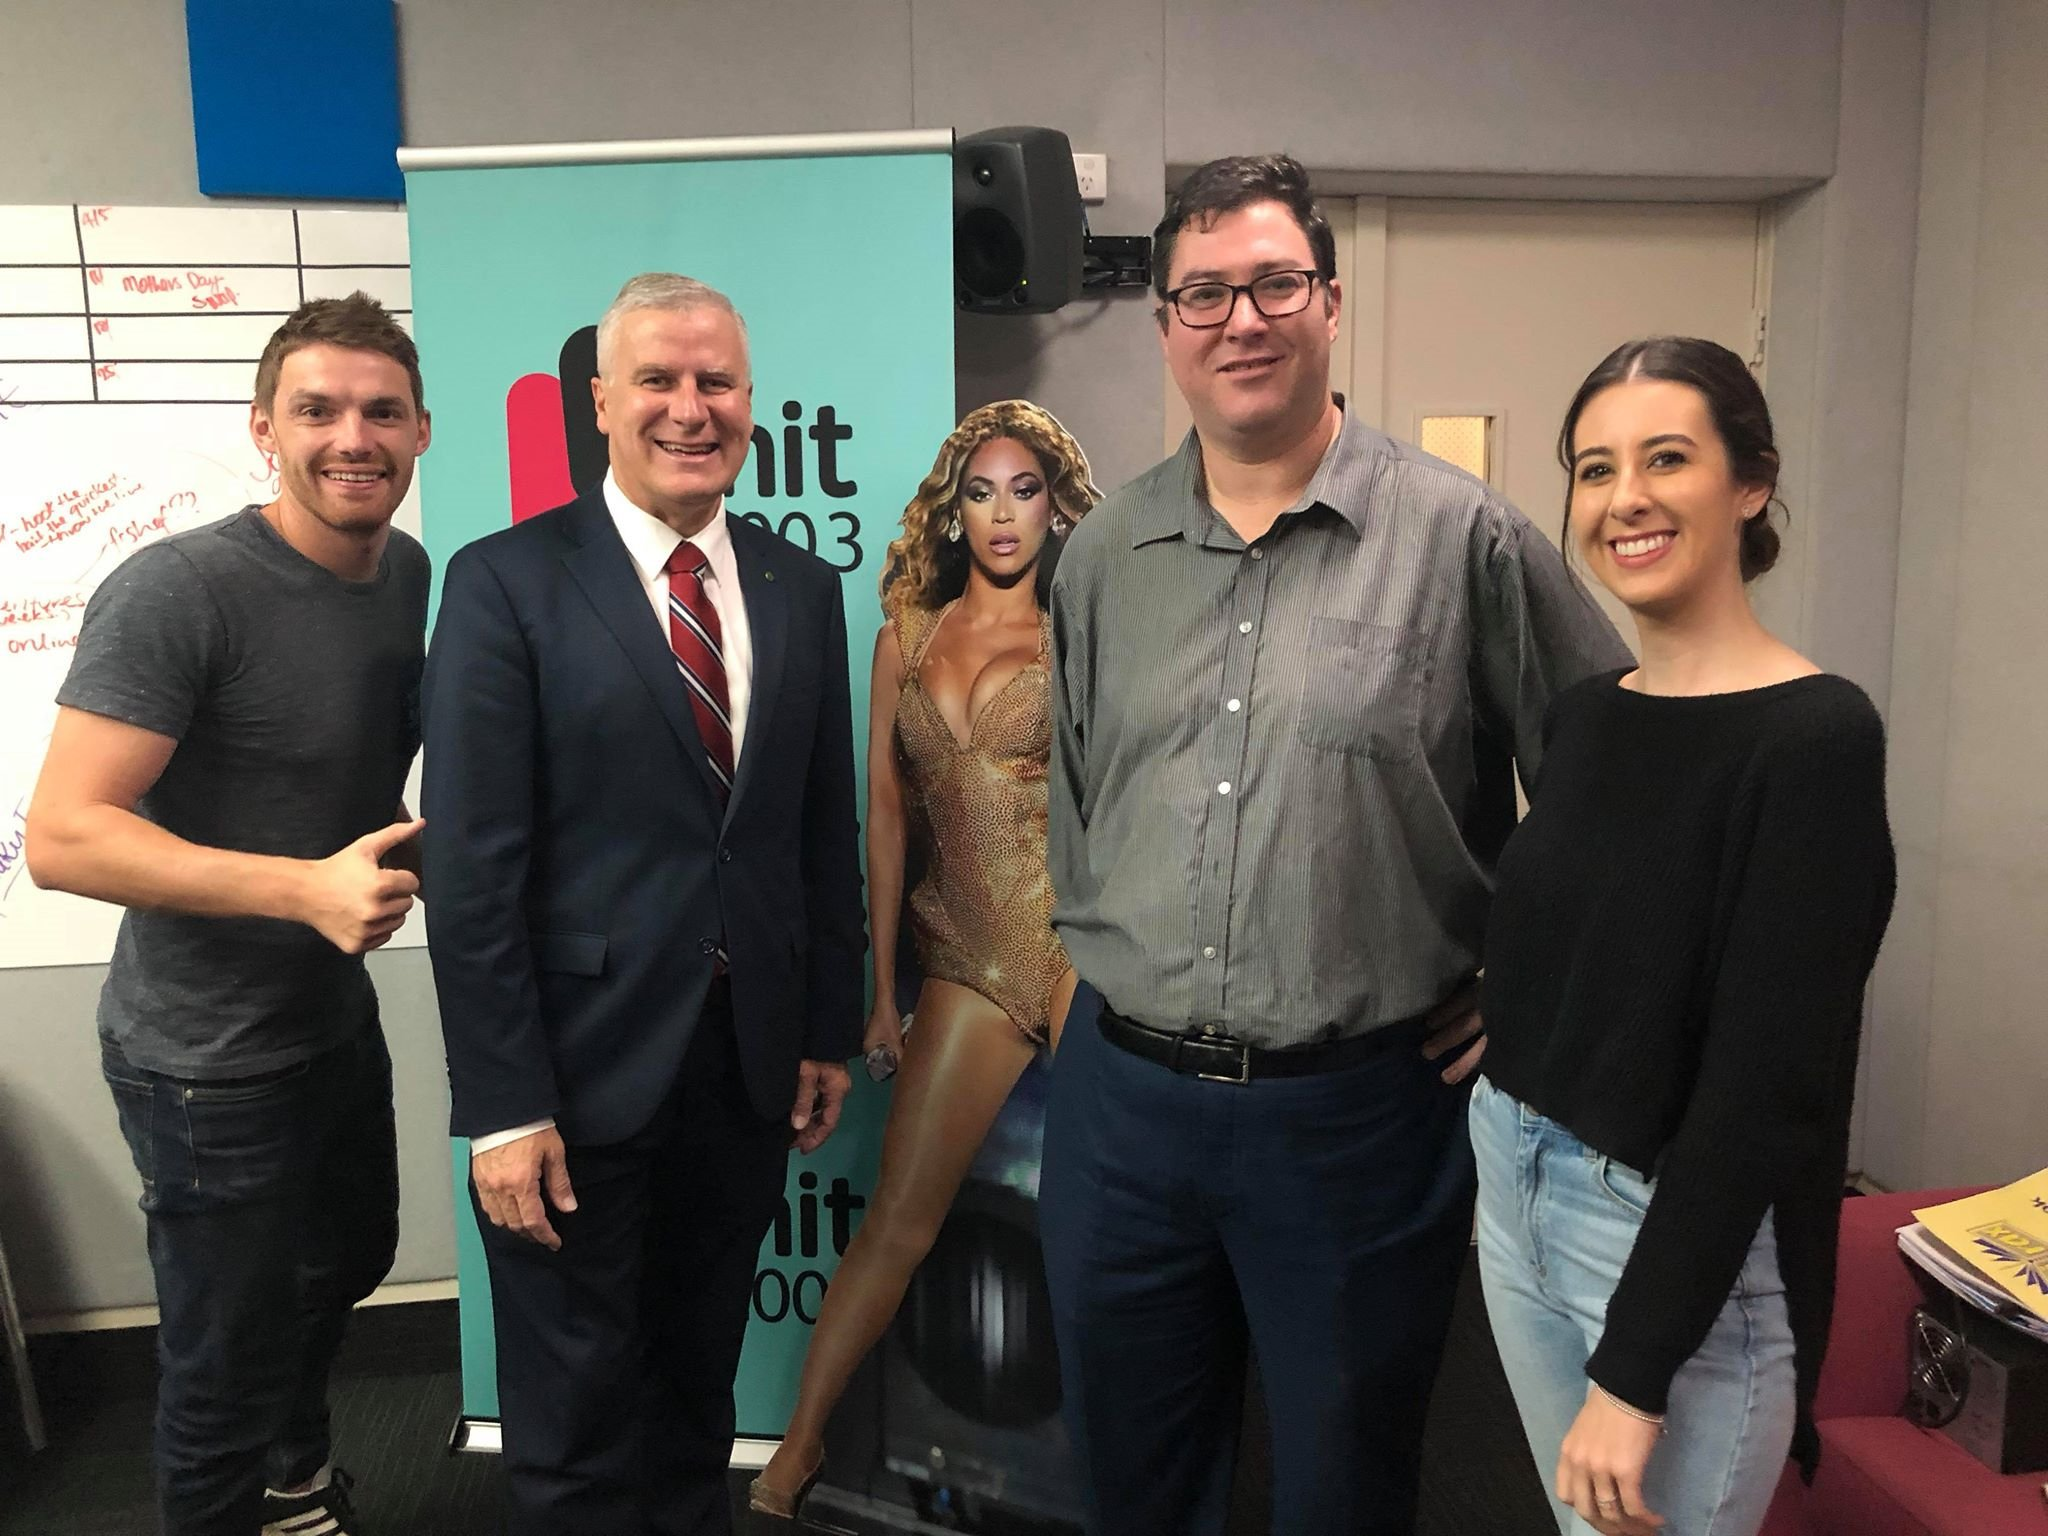 Deputy PM Michael McCormack & George Christensen Discuss Put A Ring Road On It